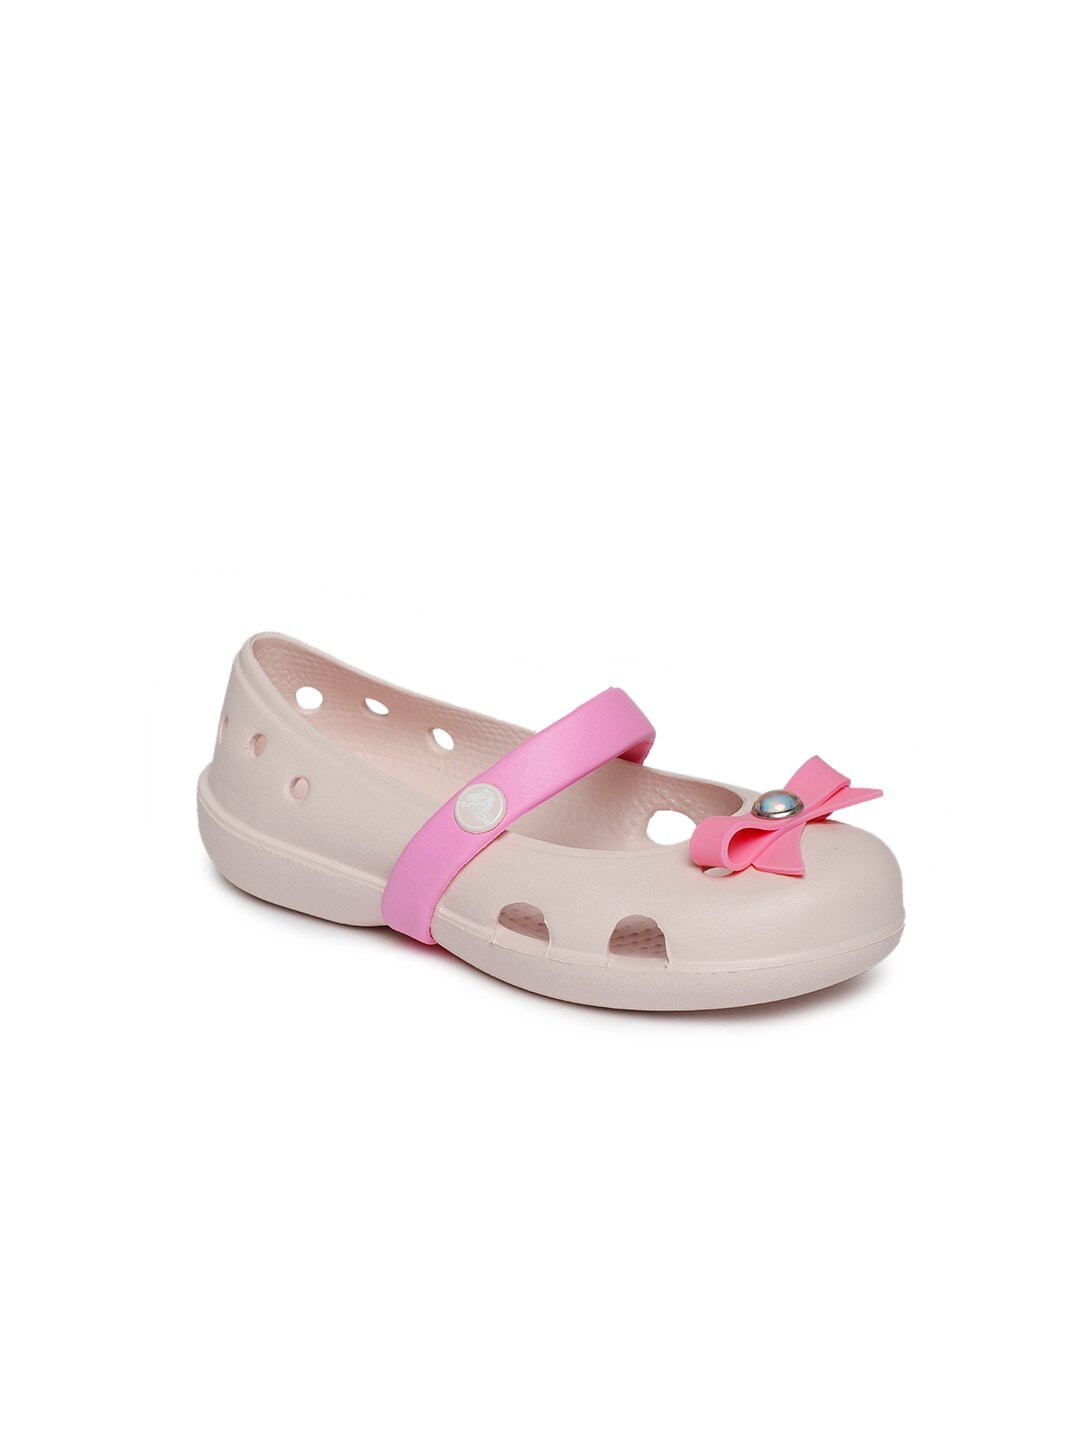 b4fef796ac2 Boys Girls Crocs - Buy Boys Girls Crocs online in India